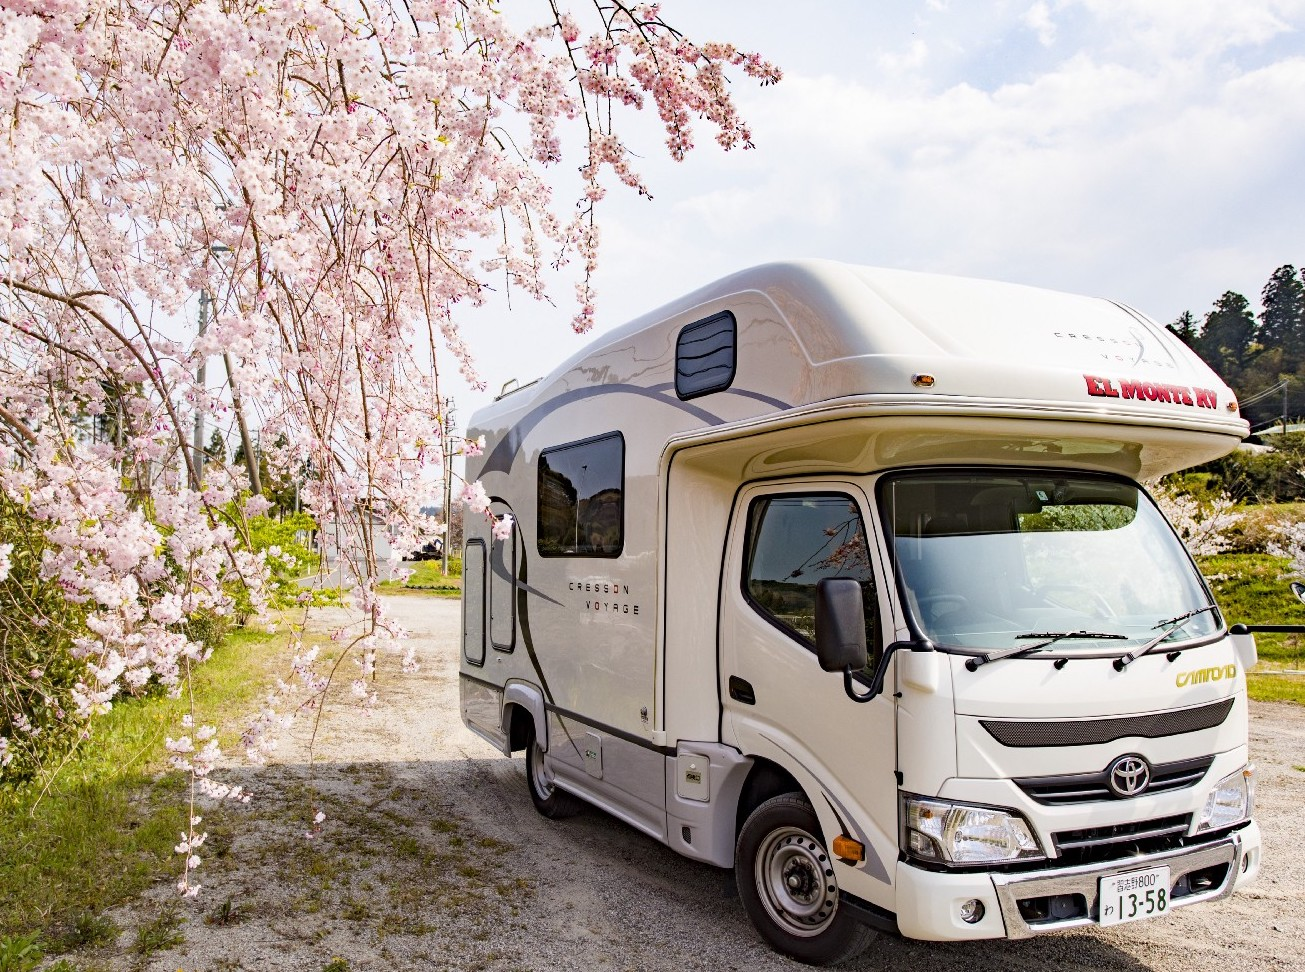 RV with cherry blossoms